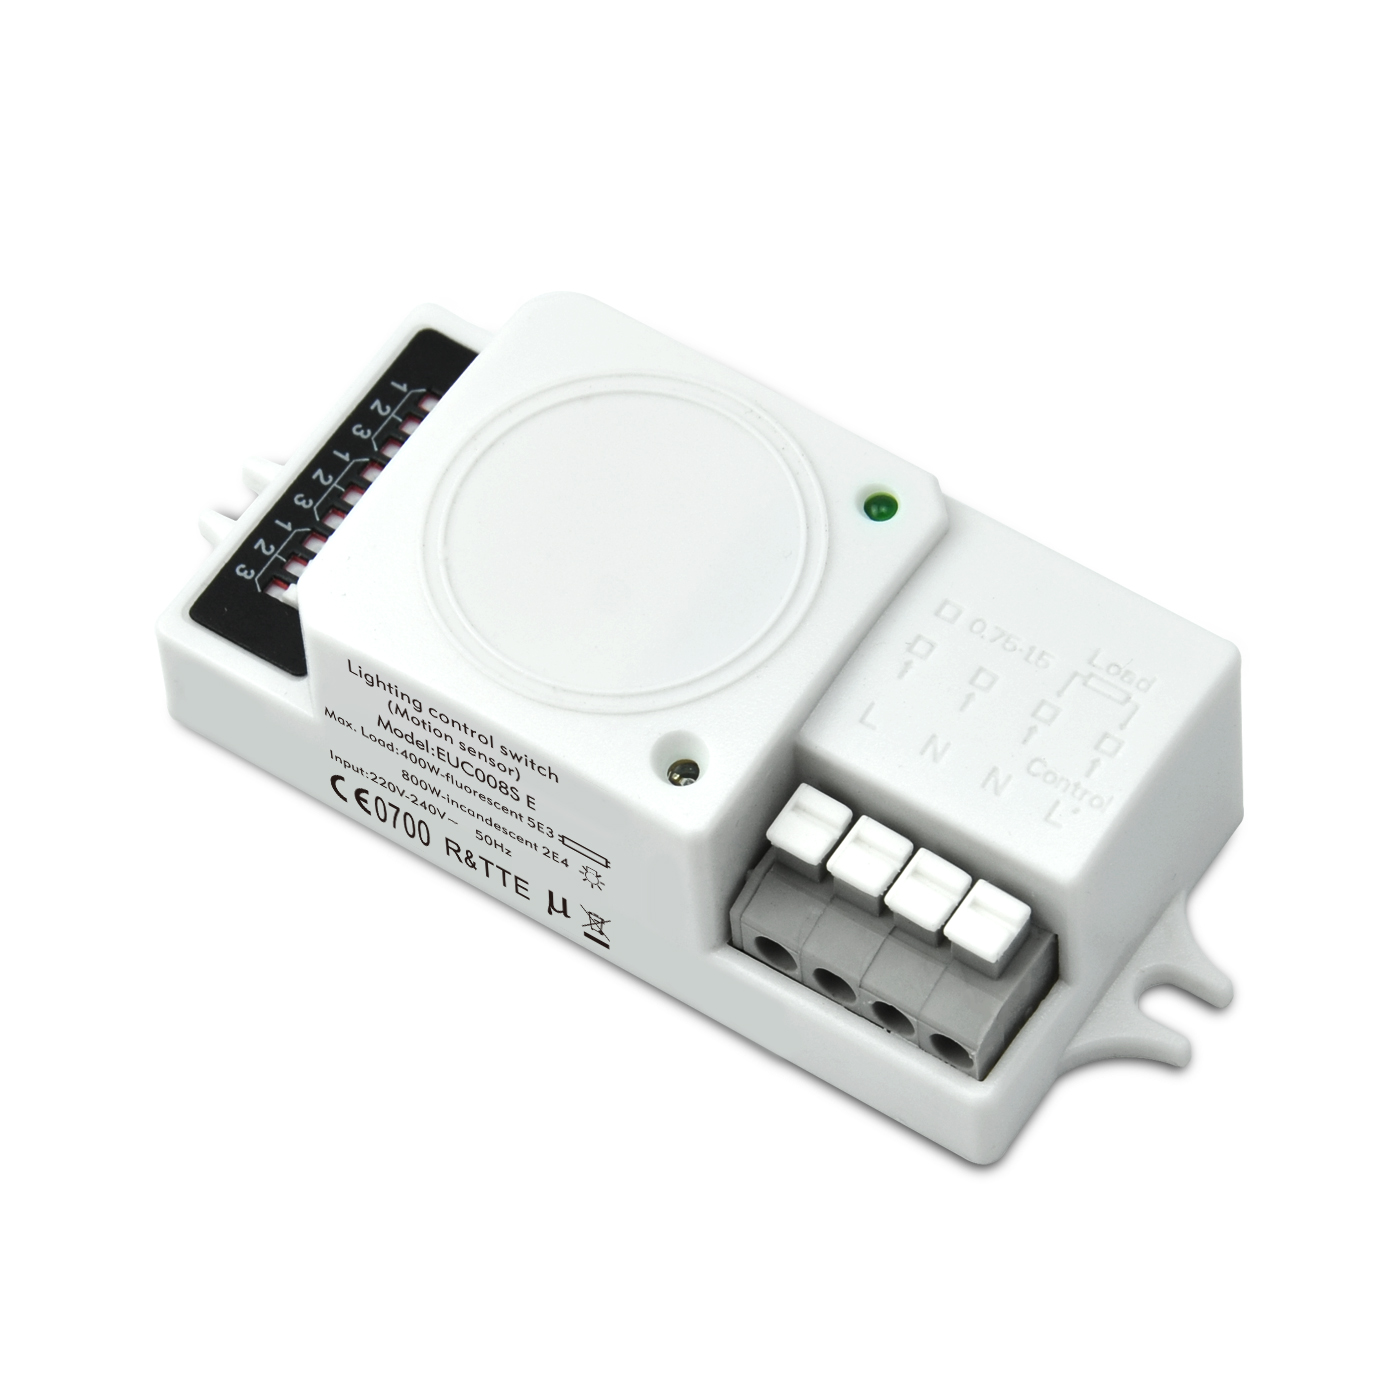 [out of stock]220-240VAC ON/OFF Control Sensor